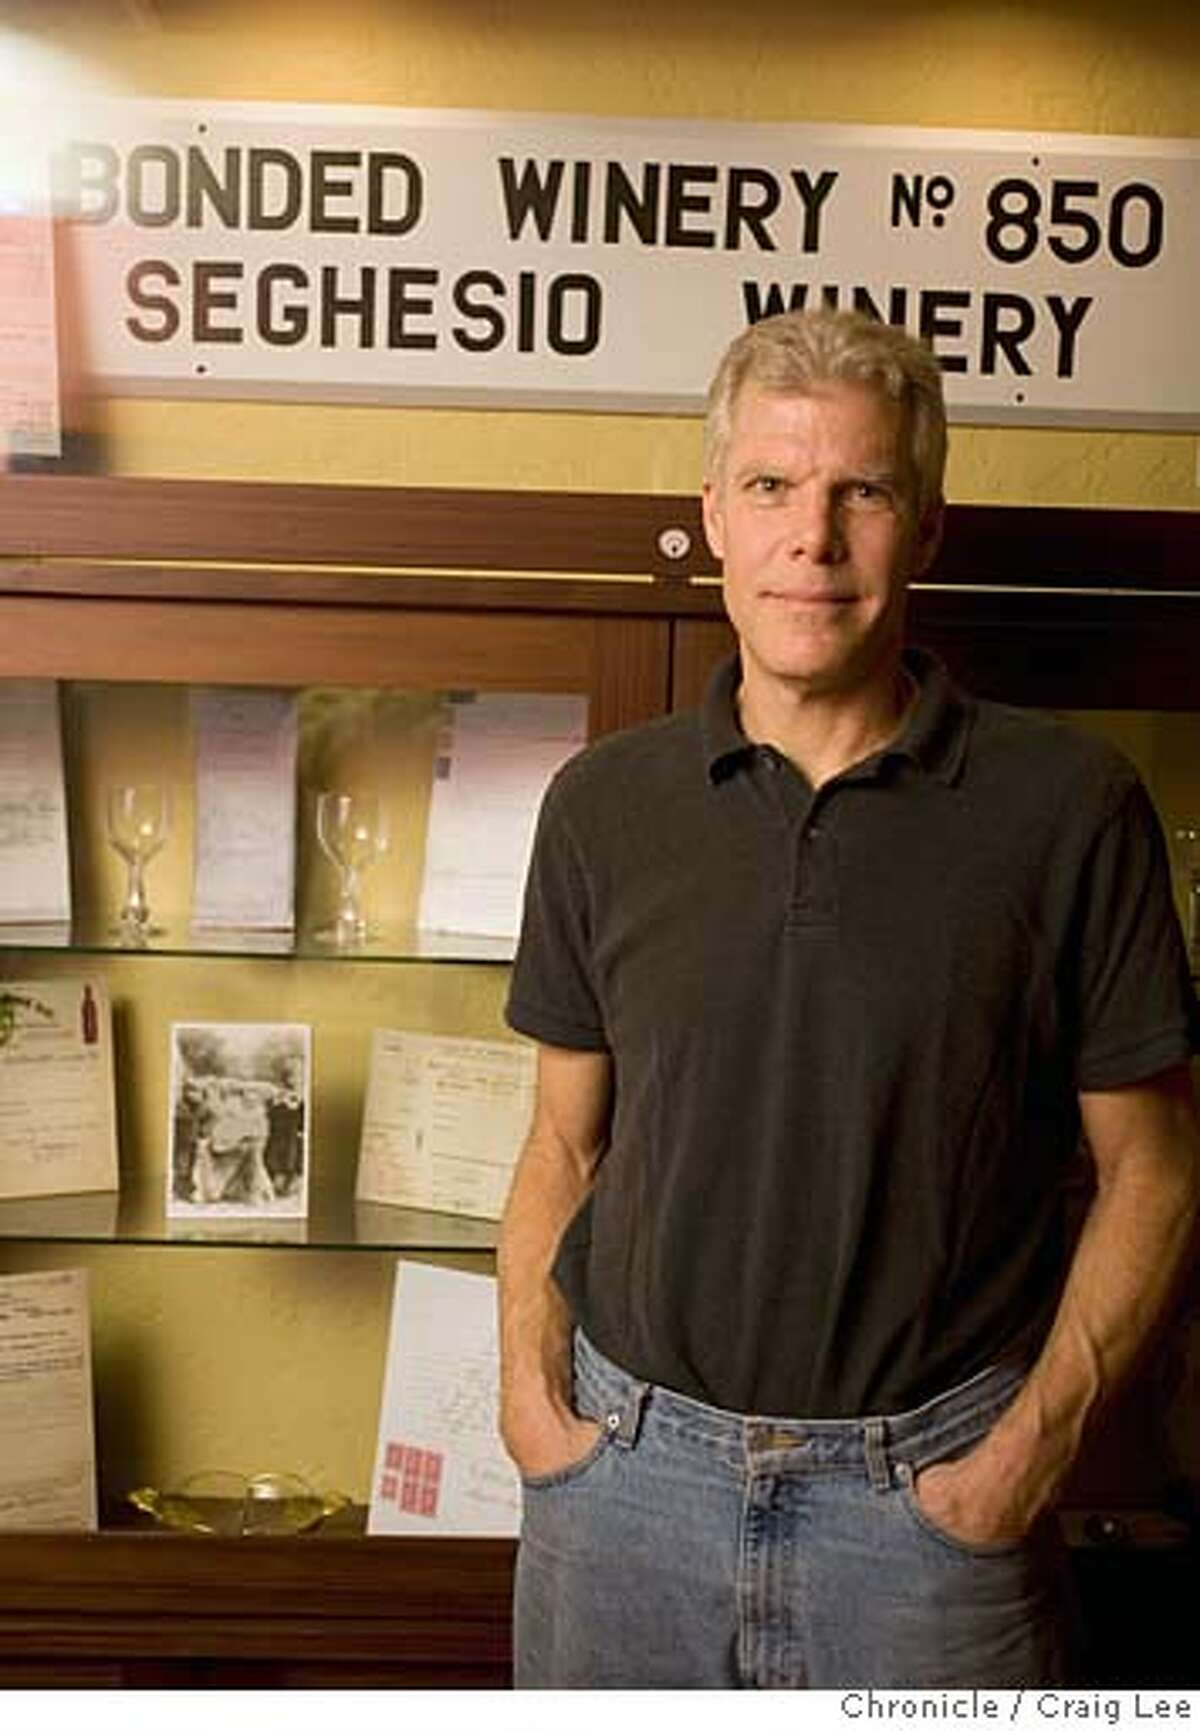 Photo of Ted Seghesio, winemaker at Seghesio Family Vineyards. on 1/8/08 in Healdsburg. photo by Craig Lee / The Chronicle